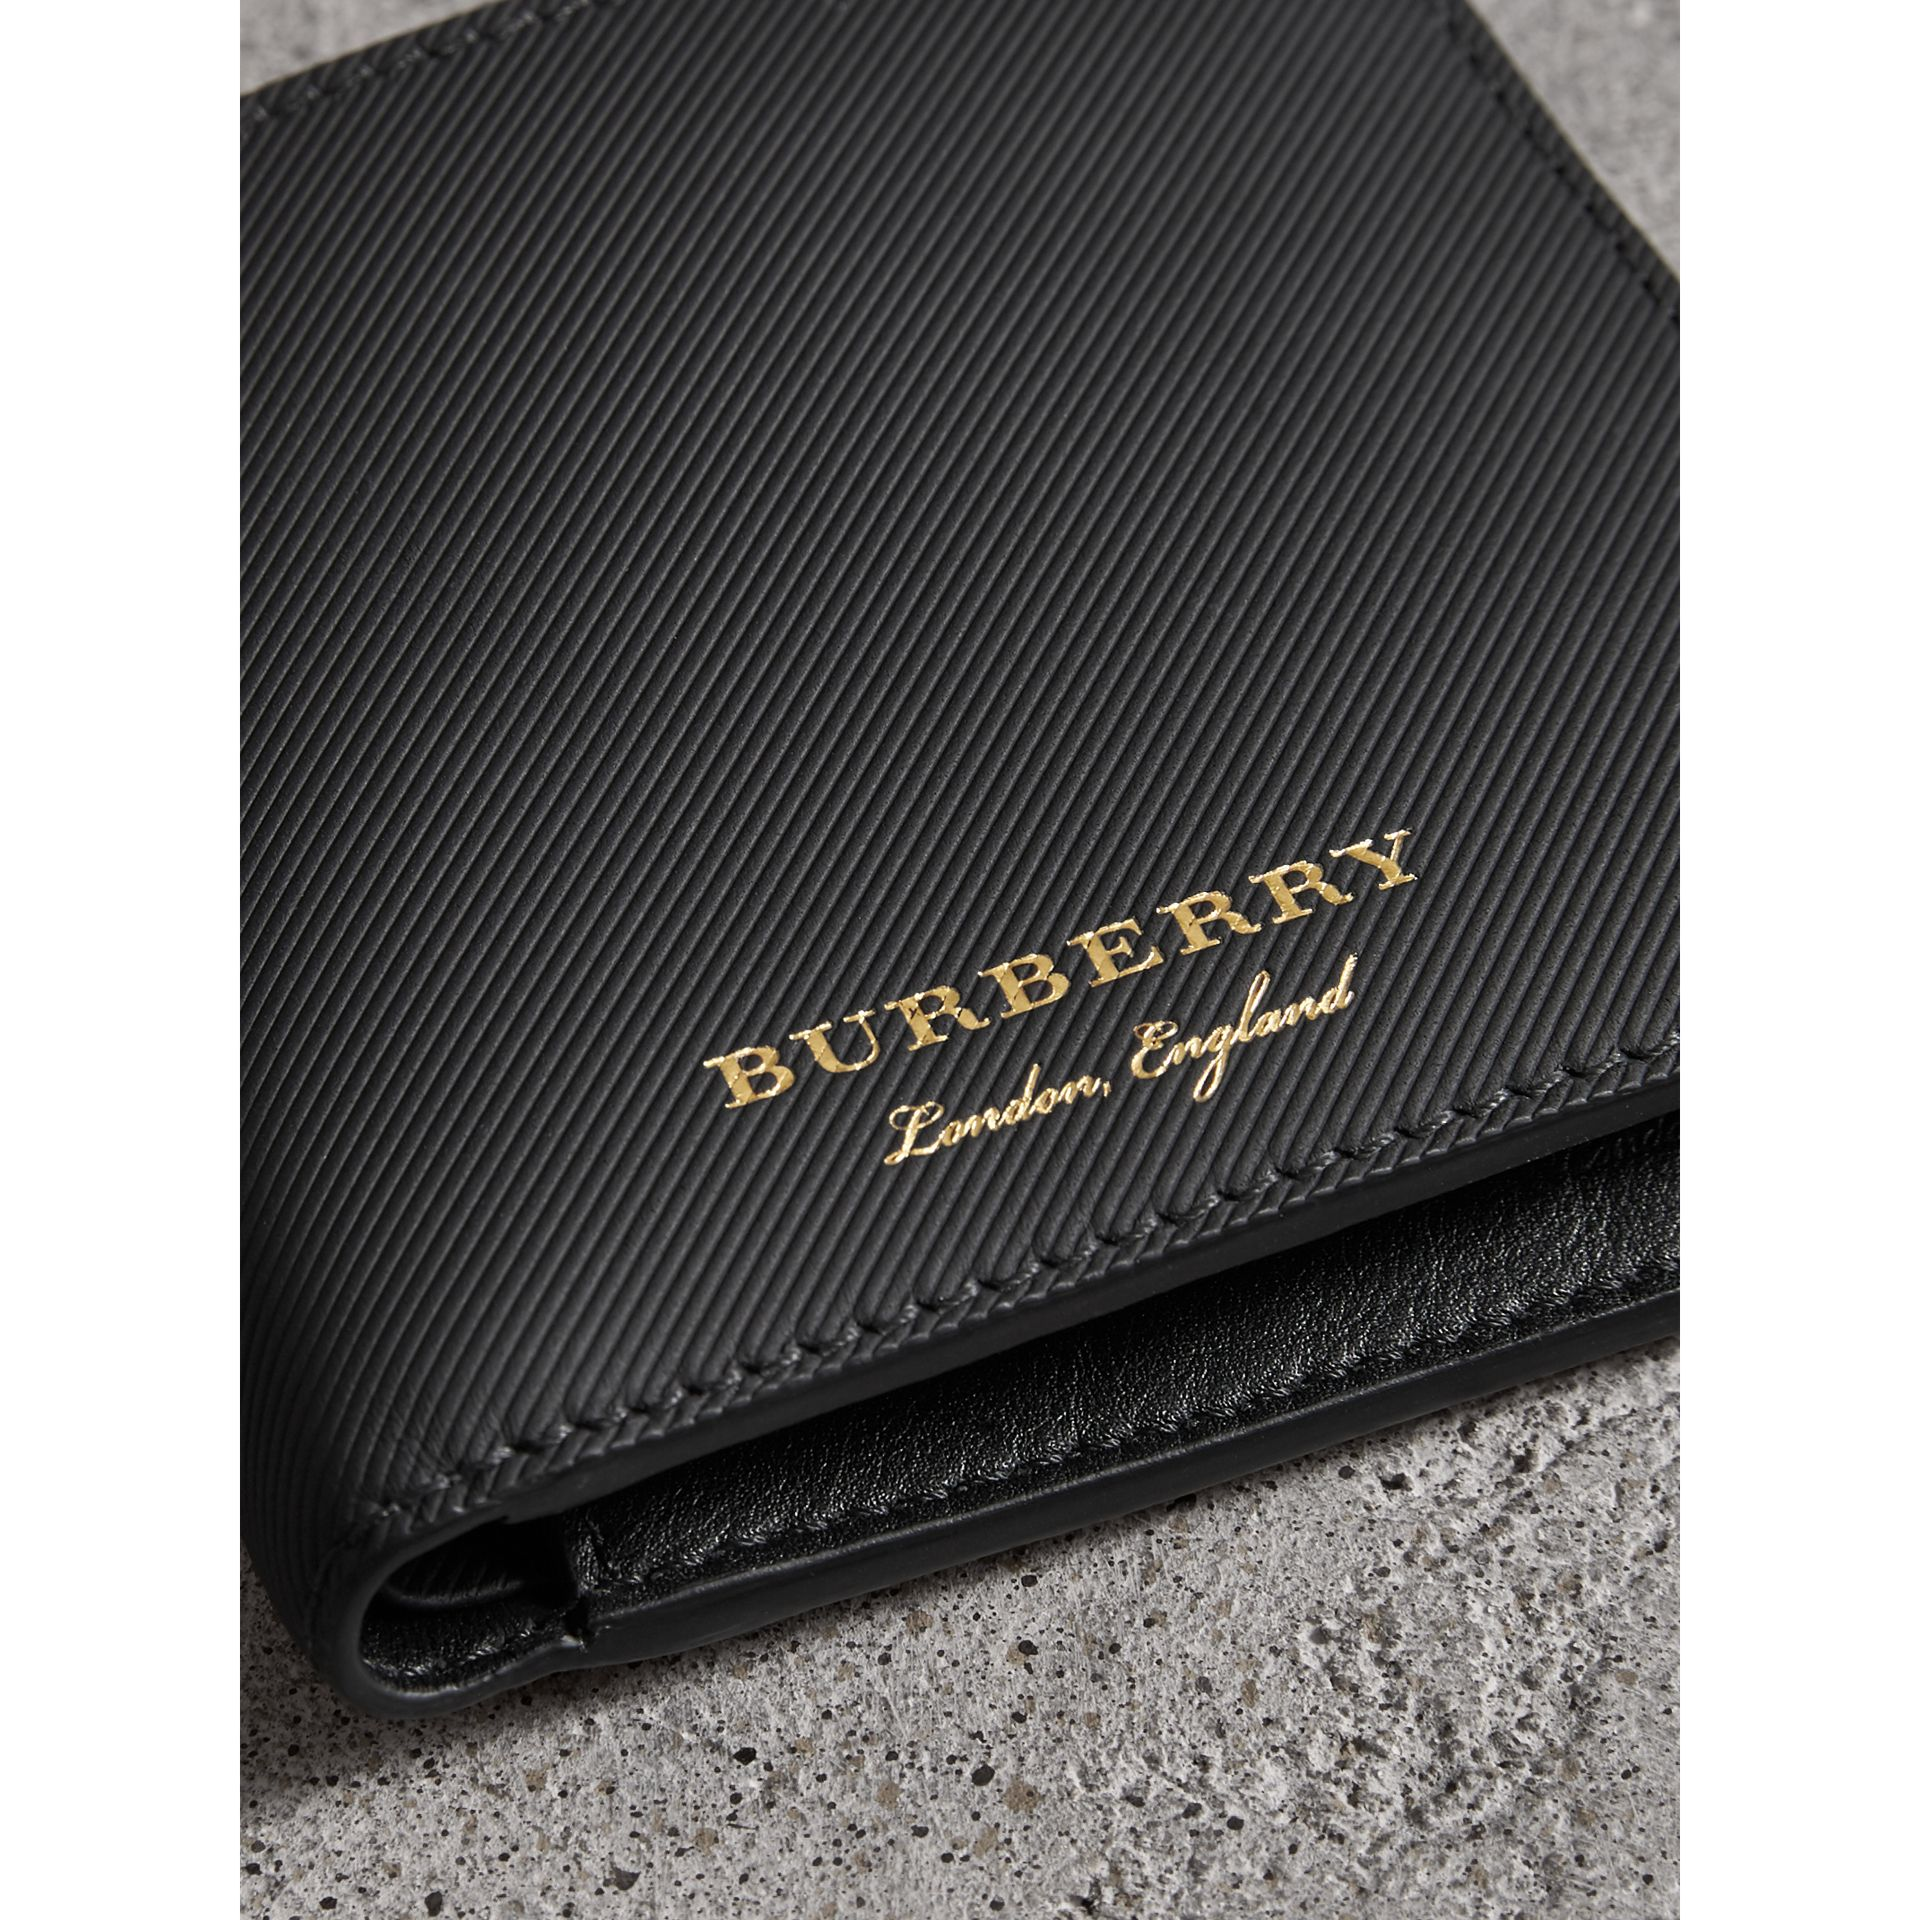 Trench Leather Bifold Wallet with Removable Card Case in Black - Men | Burberry - gallery image 1